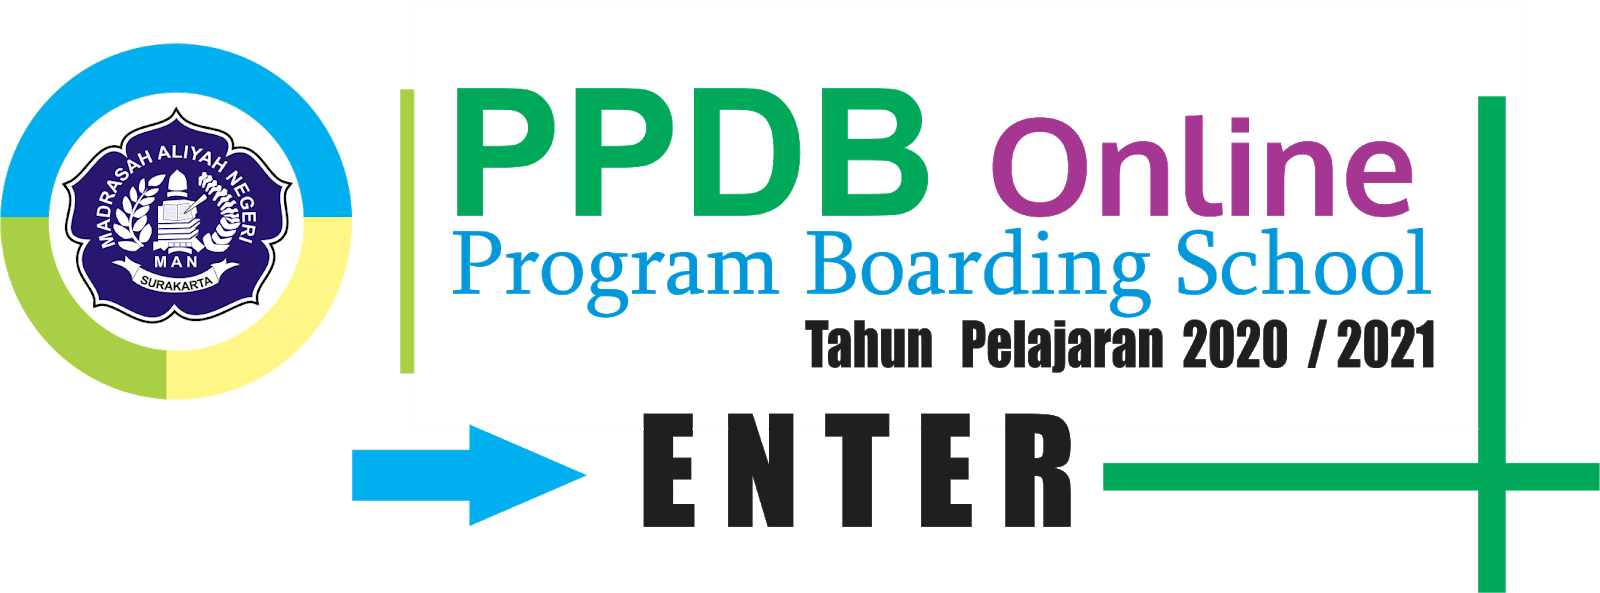 INFO PPDB PROGRAM BOARDING SCHOOL